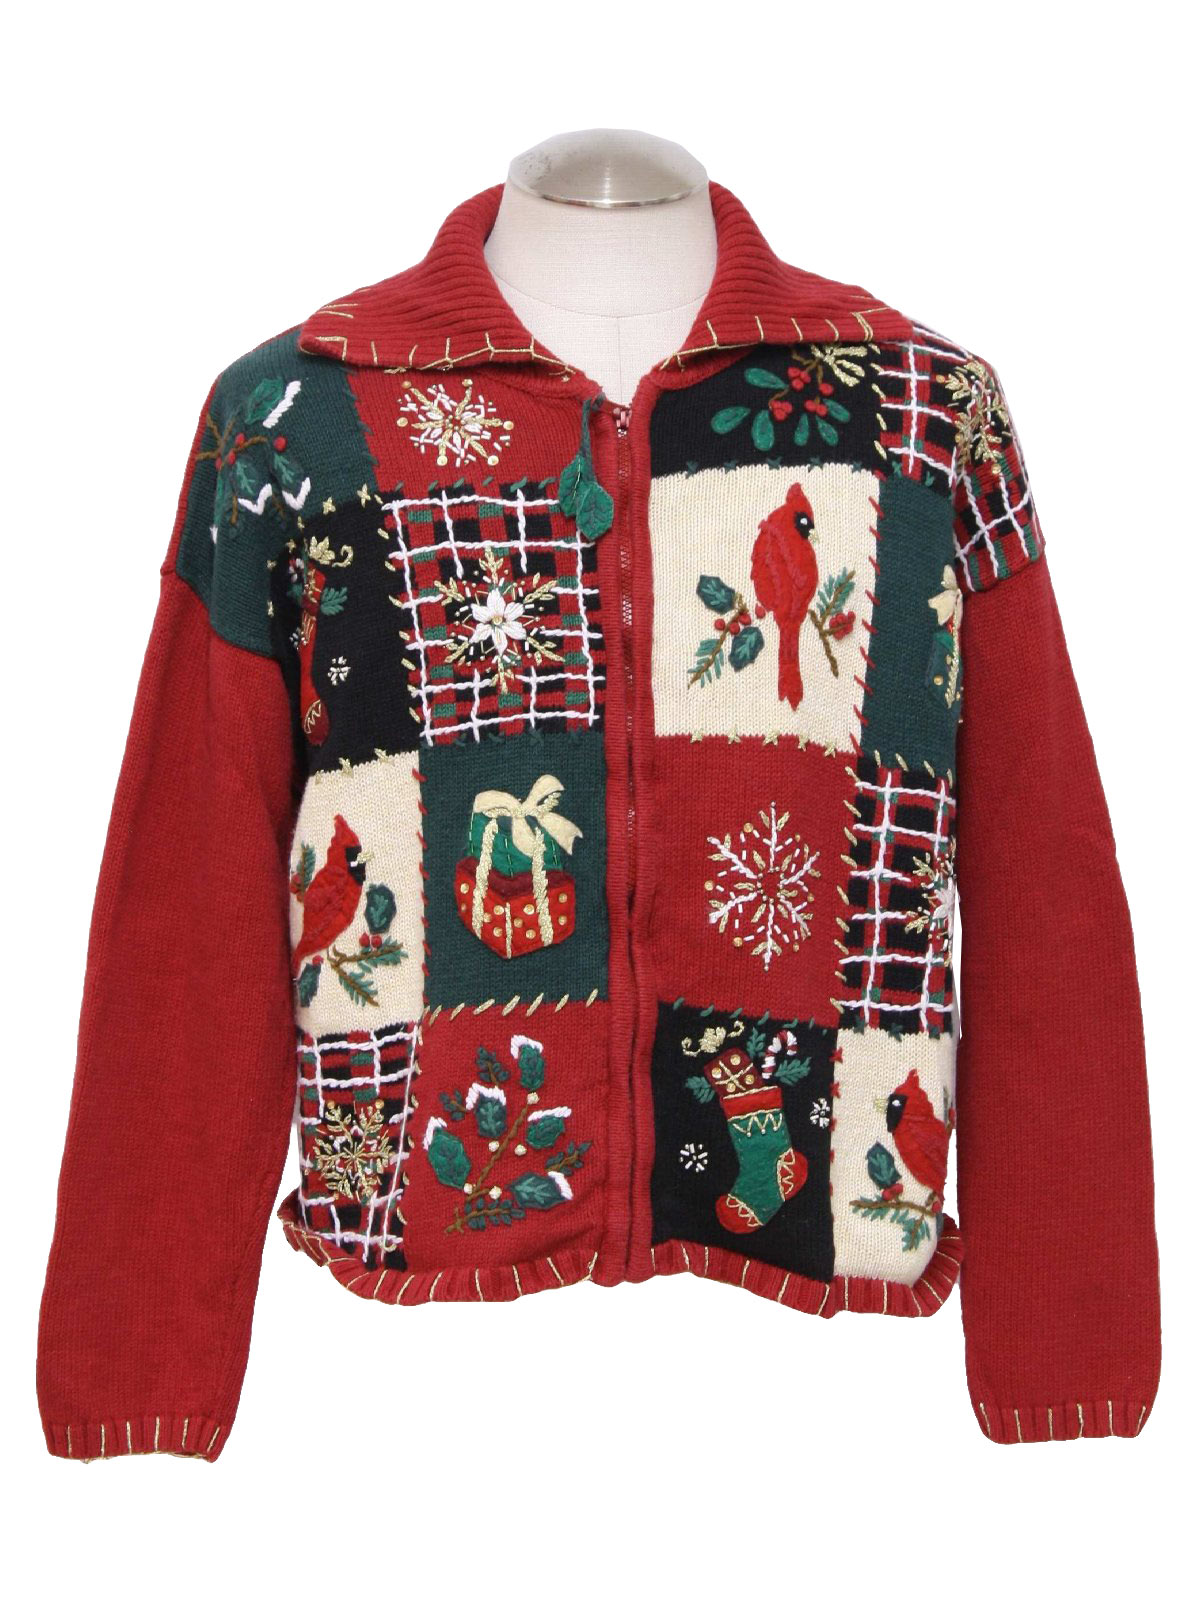 Ugly christmas sweater tiara unisex red background for Over the top ugly christmas sweaters